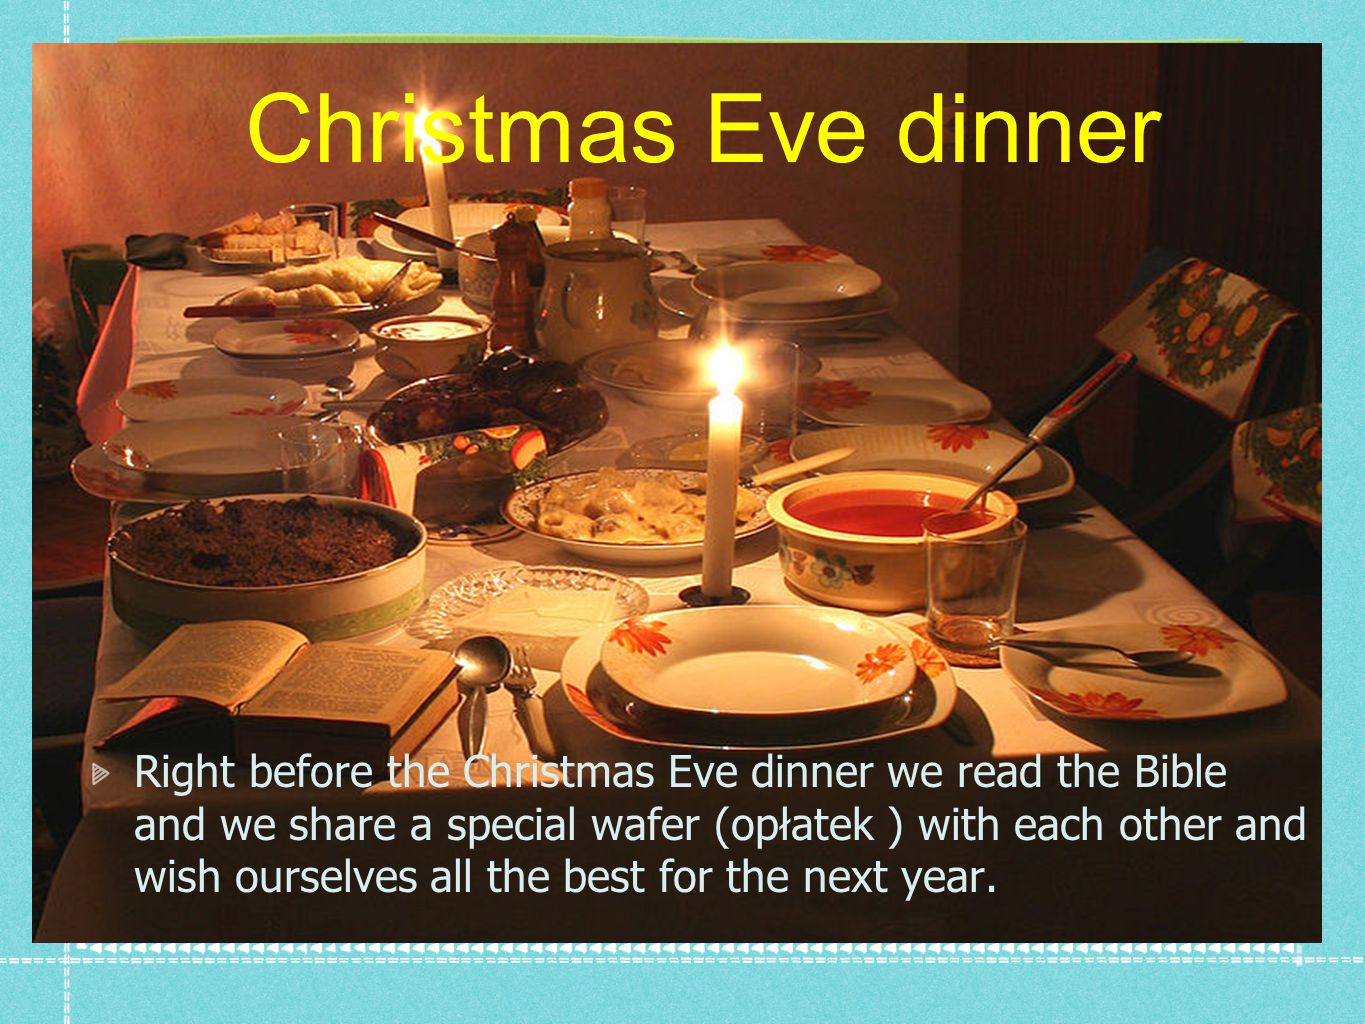 Christmas Eve dinner Right before the Christmas Eve dinner we read the Bible and we share a special wafer (opłatek ) with each other and wish ourselves all the best for the next year.